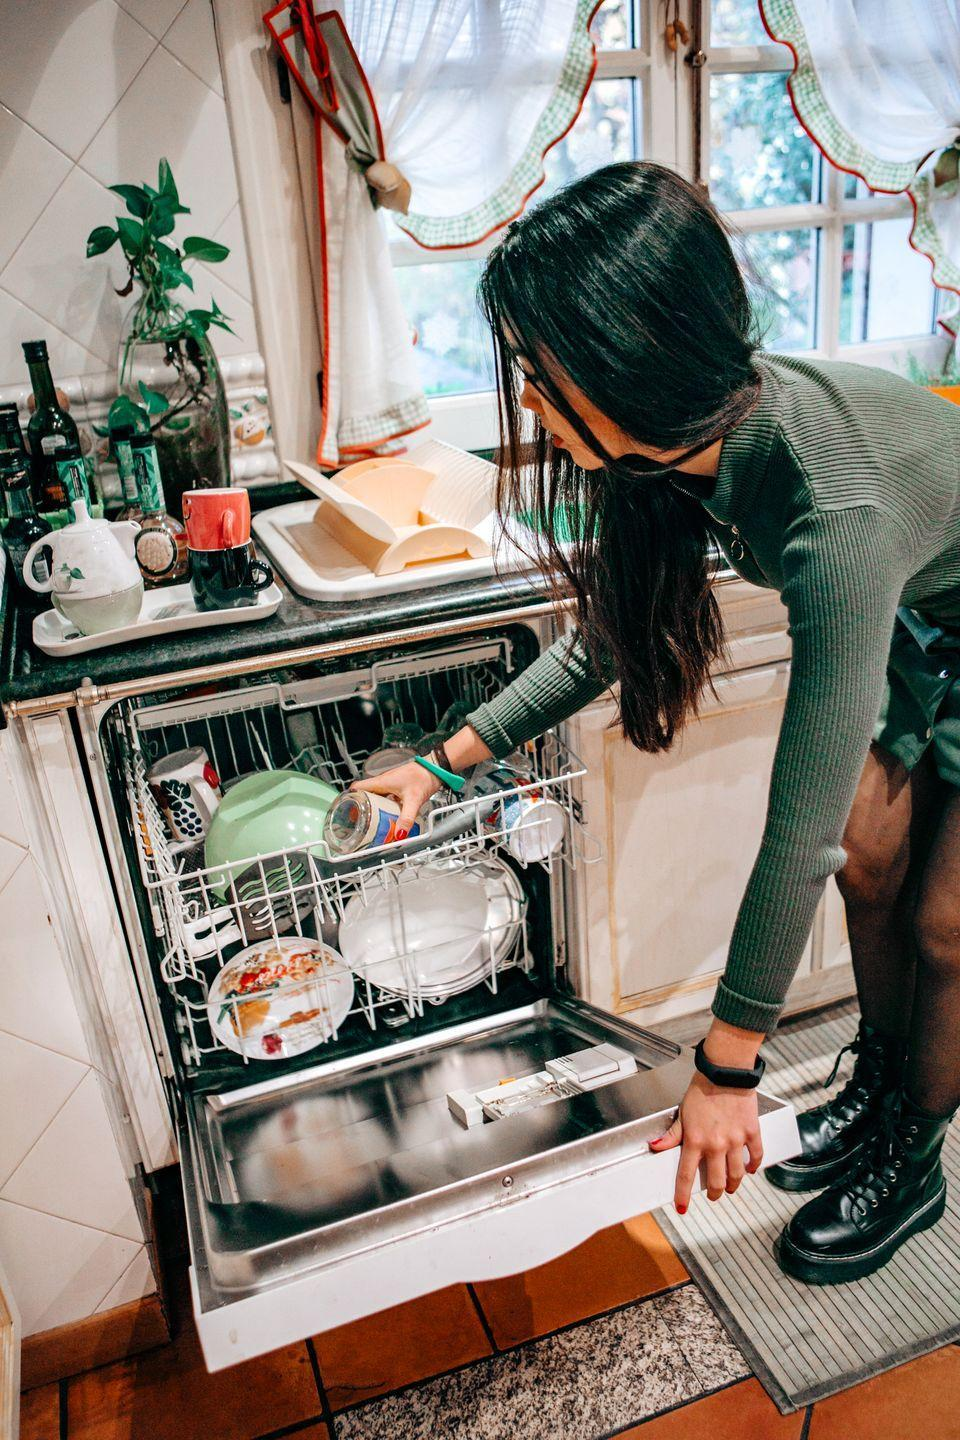 "<p>If you want your dishwasher to do its job properly, you're going to want to get rid of the food debris and detergent residue that builds up over time. Use dishwasher cleaning tablets with surfactants to dissolve all of those gross left-behind dregs. After you empty your dishwasher, run it with <a href=""https://www.amazon.com/Finish-Dual-Action-Dishwasher-Cleaner/dp/B010OVNPEW?tag=syn-yahoo-20&ascsubtag=%5Bartid%7C1782.g.33584458%5Bsrc%7Cyahoo-us"" rel=""nofollow noopener"" target=""_blank"" data-ylk=""slk:Finish Dual Action Dishwasher Cleaner"" class=""link rapid-noclick-resp"">Finish Dual Action Dishwasher Cleaner</a>,<a href=""https://www.amazon.com/Affresh-W10282479-Dishwasher-Cleaner-Tablets/dp/B002R0DXQE/?tag=syn-yahoo-20&ascsubtag=%5Bartid%7C1782.g.33584458%5Bsrc%7Cyahoo-us"" rel=""nofollow noopener"" target=""_blank"" data-ylk=""slk:Affresh Dishwasher Cleaner"" class=""link rapid-noclick-resp""> Affresh Dishwasher Cleaner</a> or for really stubborn grease and residue, <a href=""https://www.amazon.com/Miele-Dishwasher-Tabs-3X20-count/dp/B00LAK1MGU/?tag=syn-yahoo-20&ascsubtag=%5Bartid%7C1782.g.33584458%5Bsrc%7Cyahoo-us"" rel=""nofollow noopener"" target=""_blank"" data-ylk=""slk:Miele Dishwasher Tabs"" class=""link rapid-noclick-resp"">Miele Dishwasher Tabs</a>.</p>"